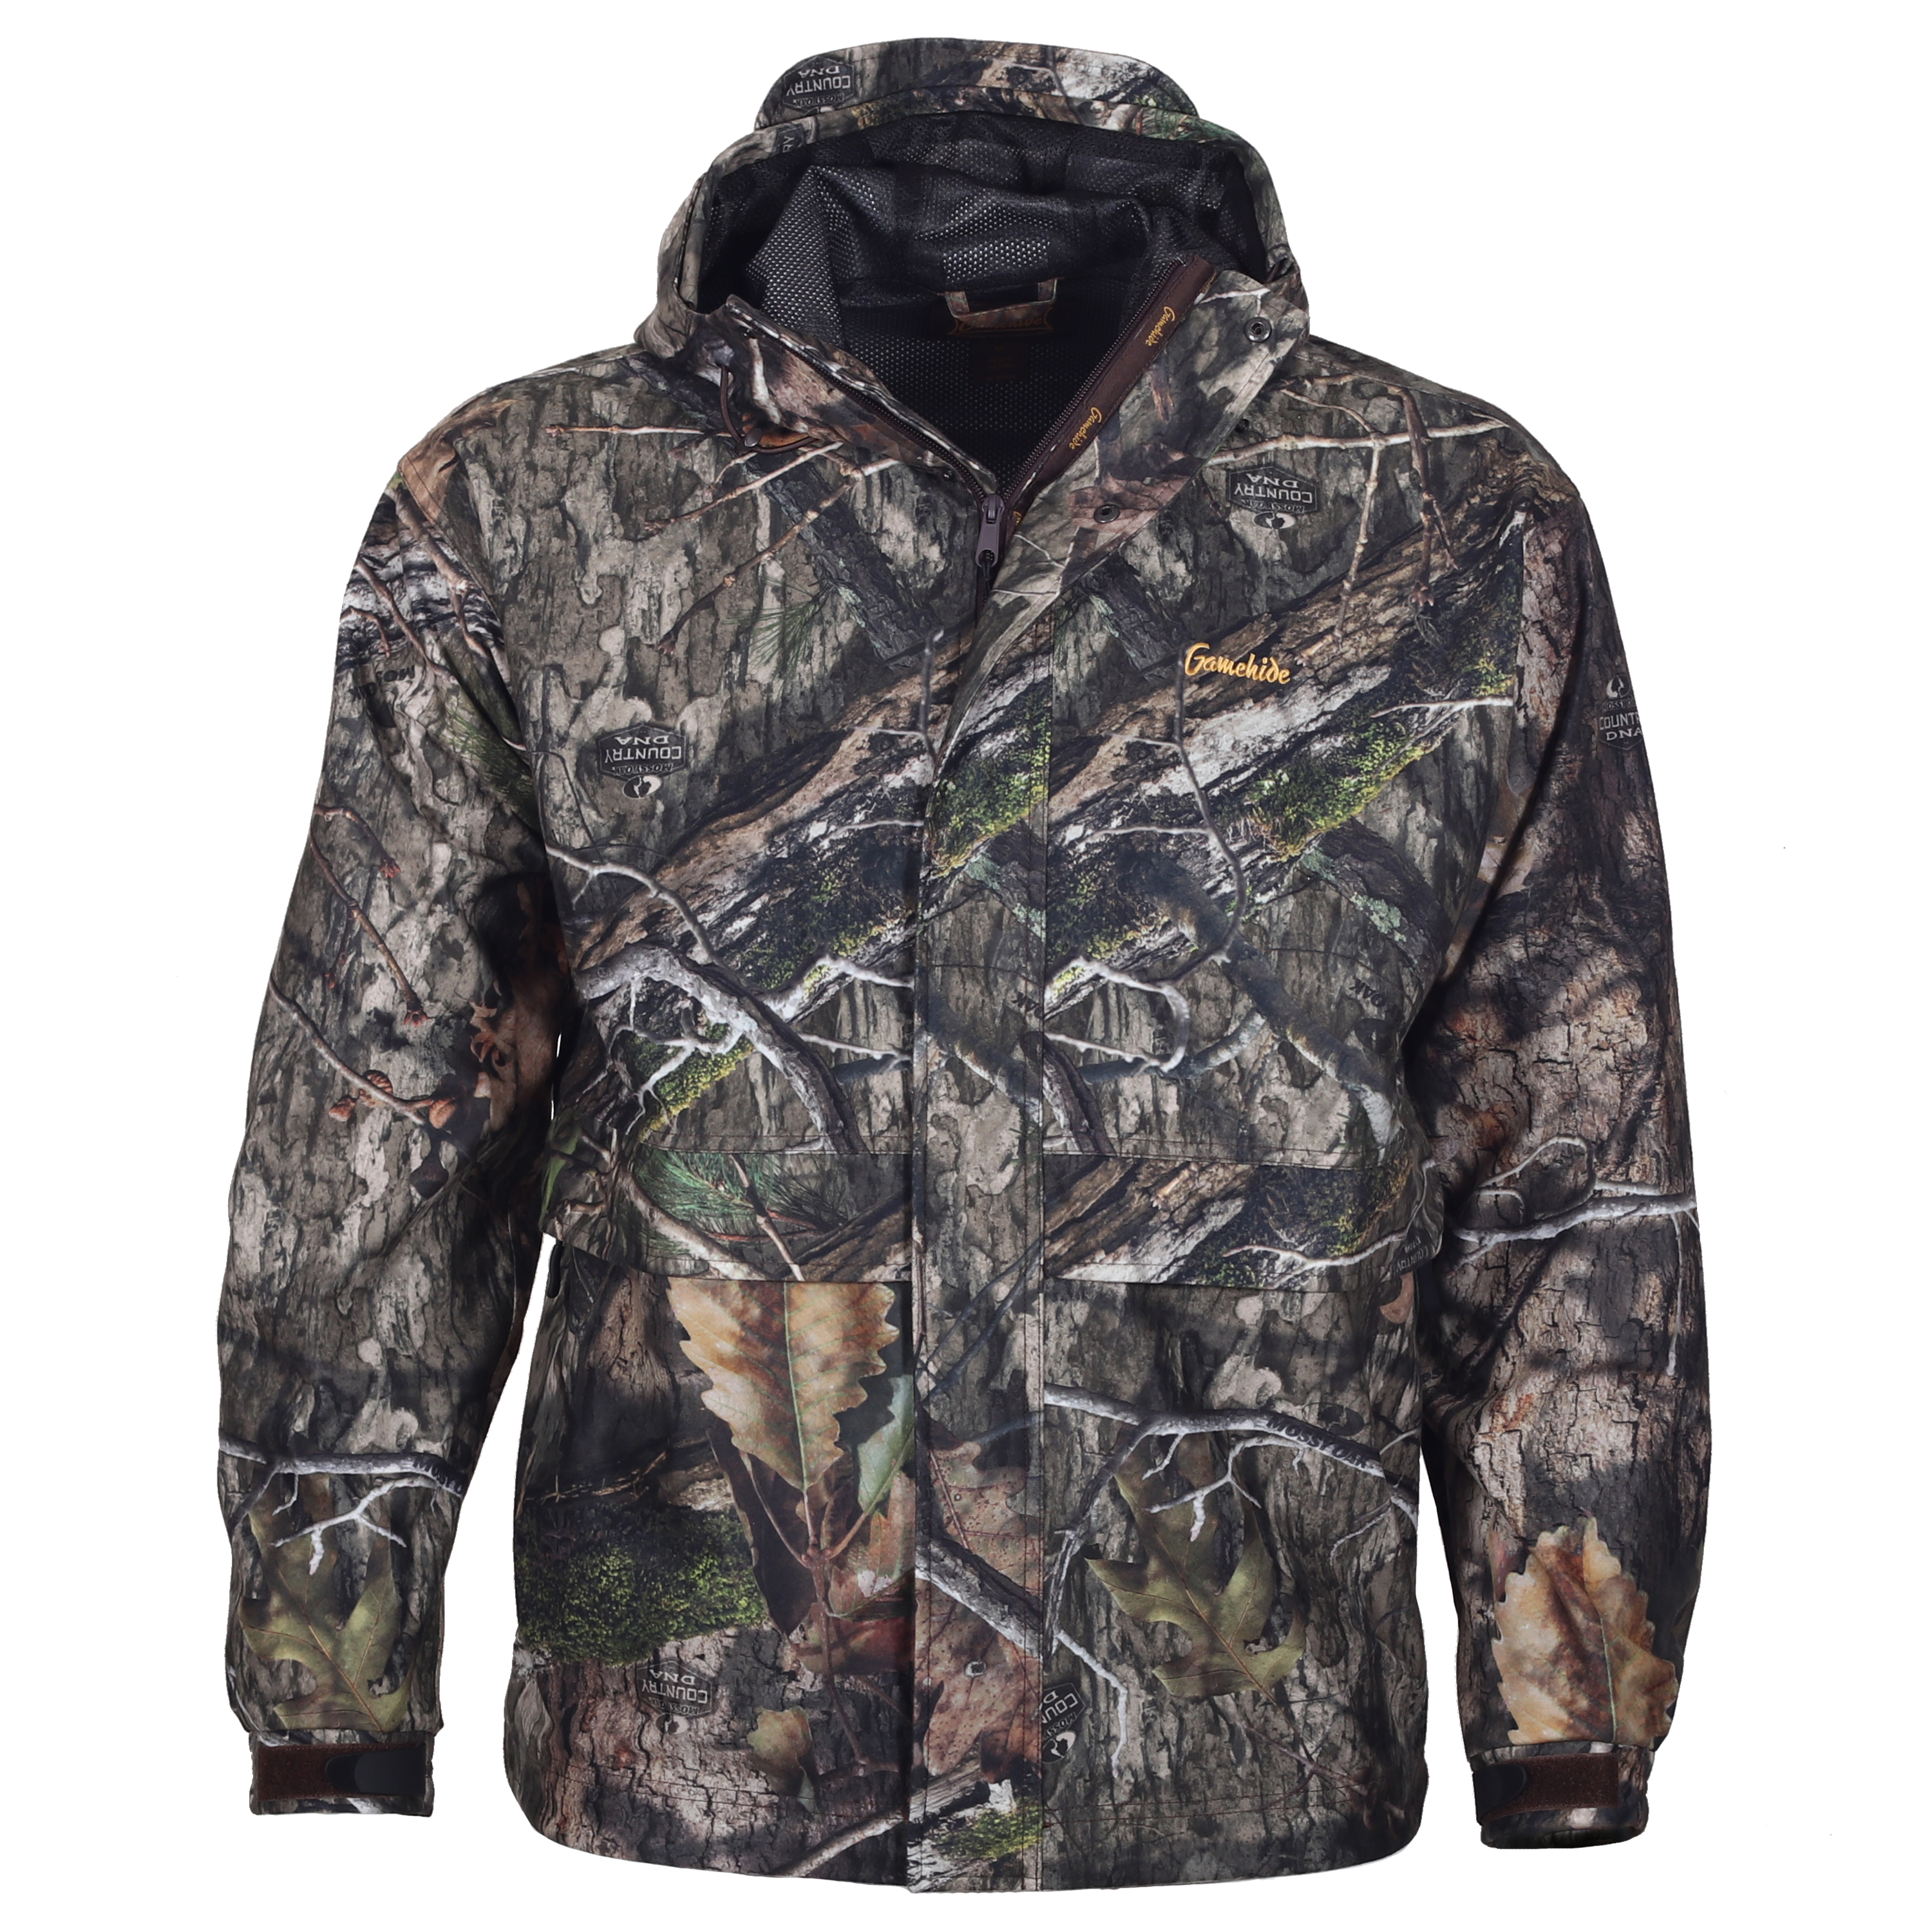 GameHide-CP5-Trails-End-Jacket-Mossy-Oak-Country-DNA-waterproof-rain-hunting-big-tall-BigCamo